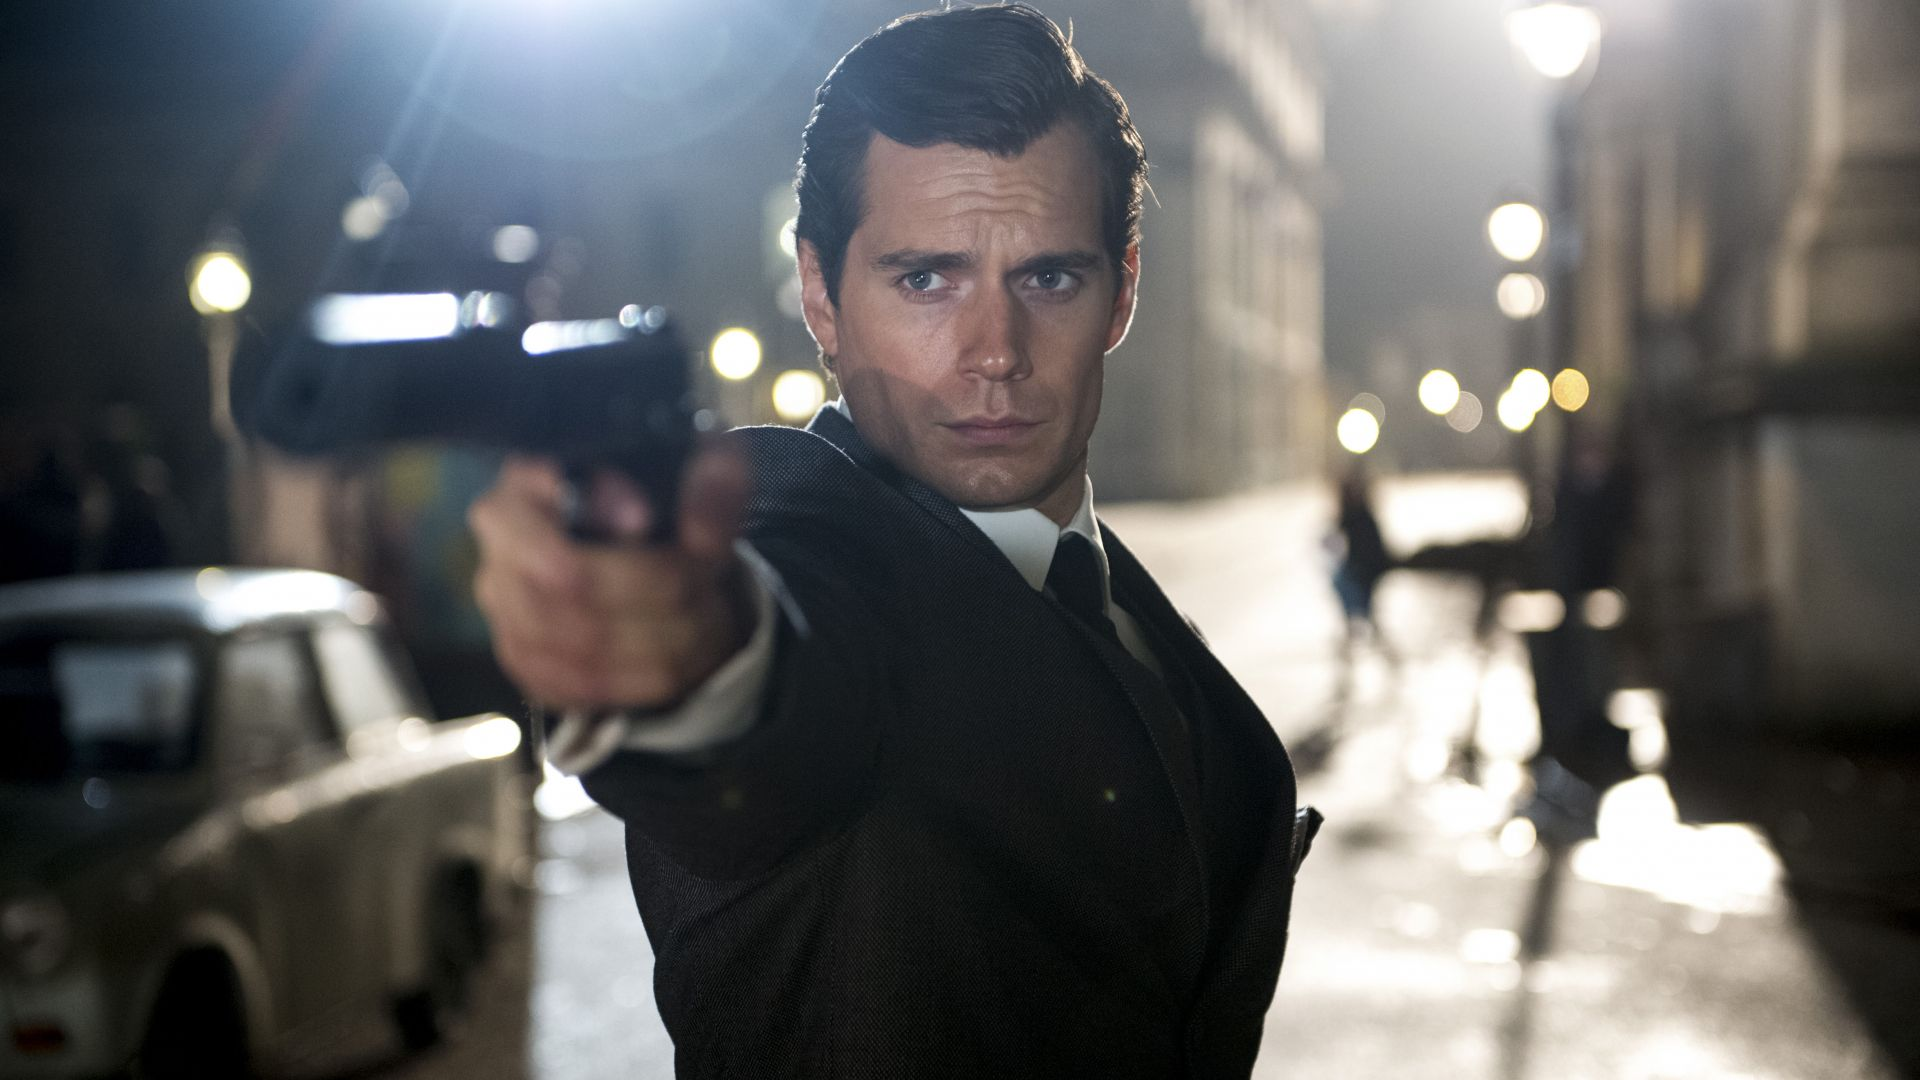 The Man from U.N.C.L.E., Best Movies of 2015, movie (horizontal)